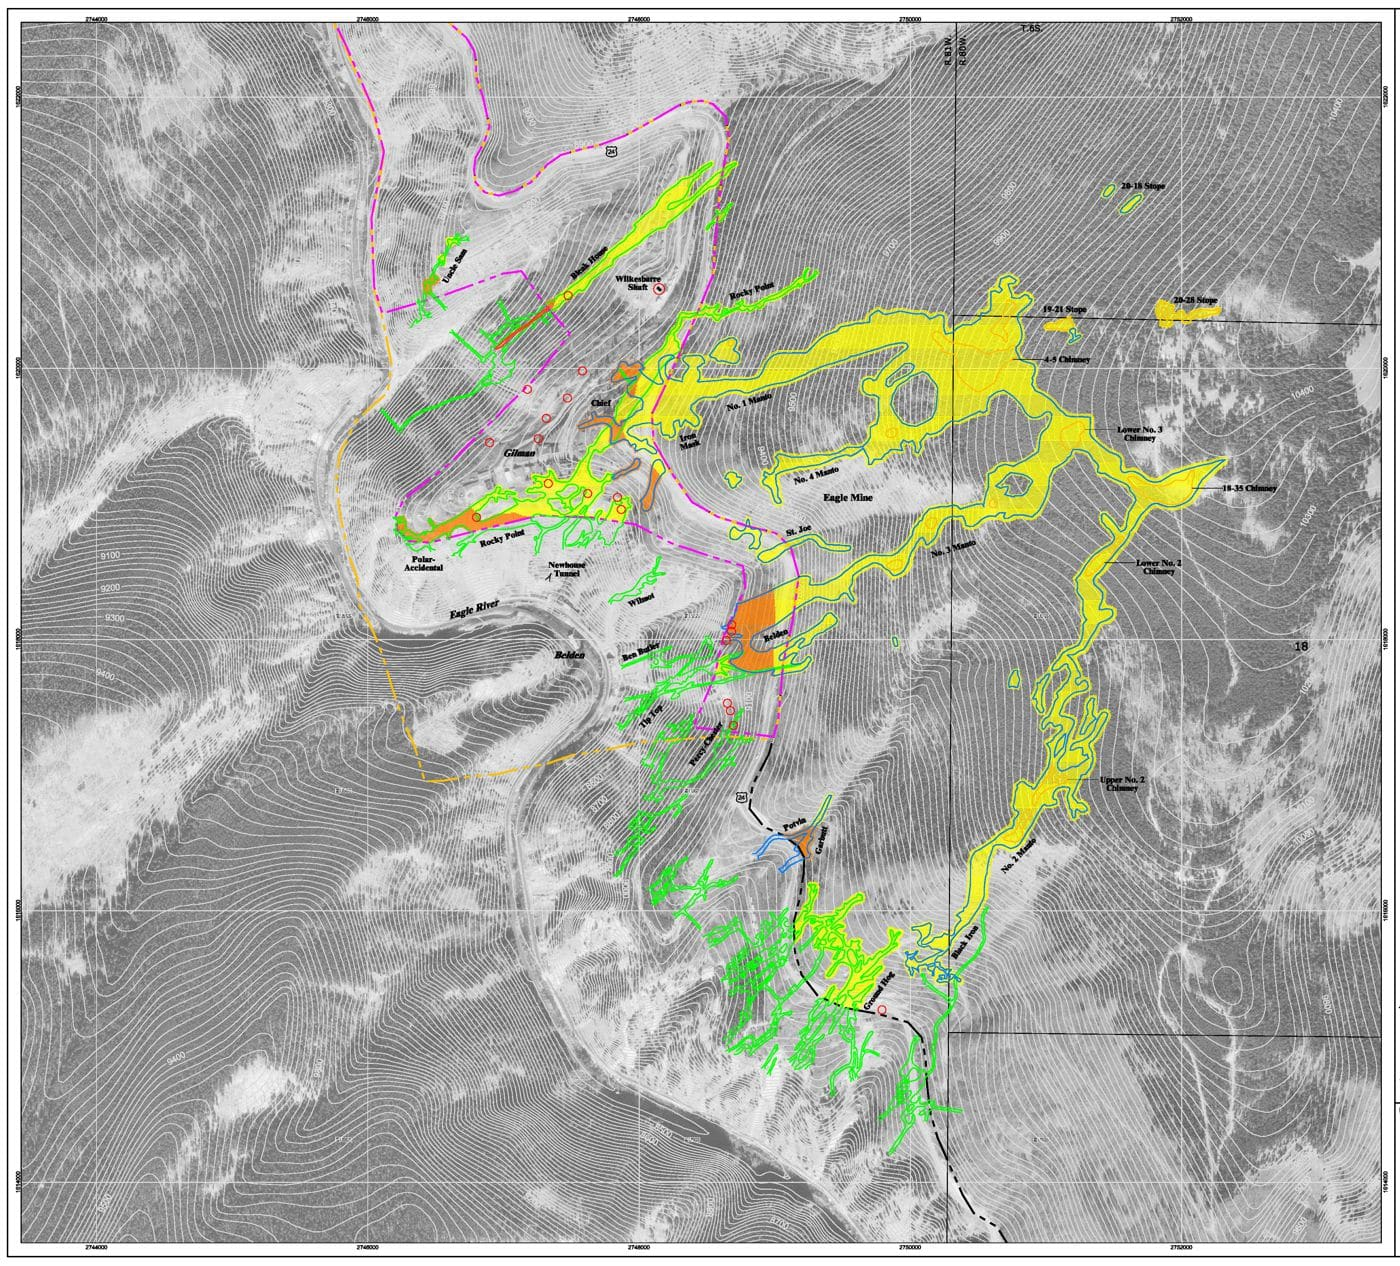 Contour map with color overlay showing areas with increased risk of subsidence